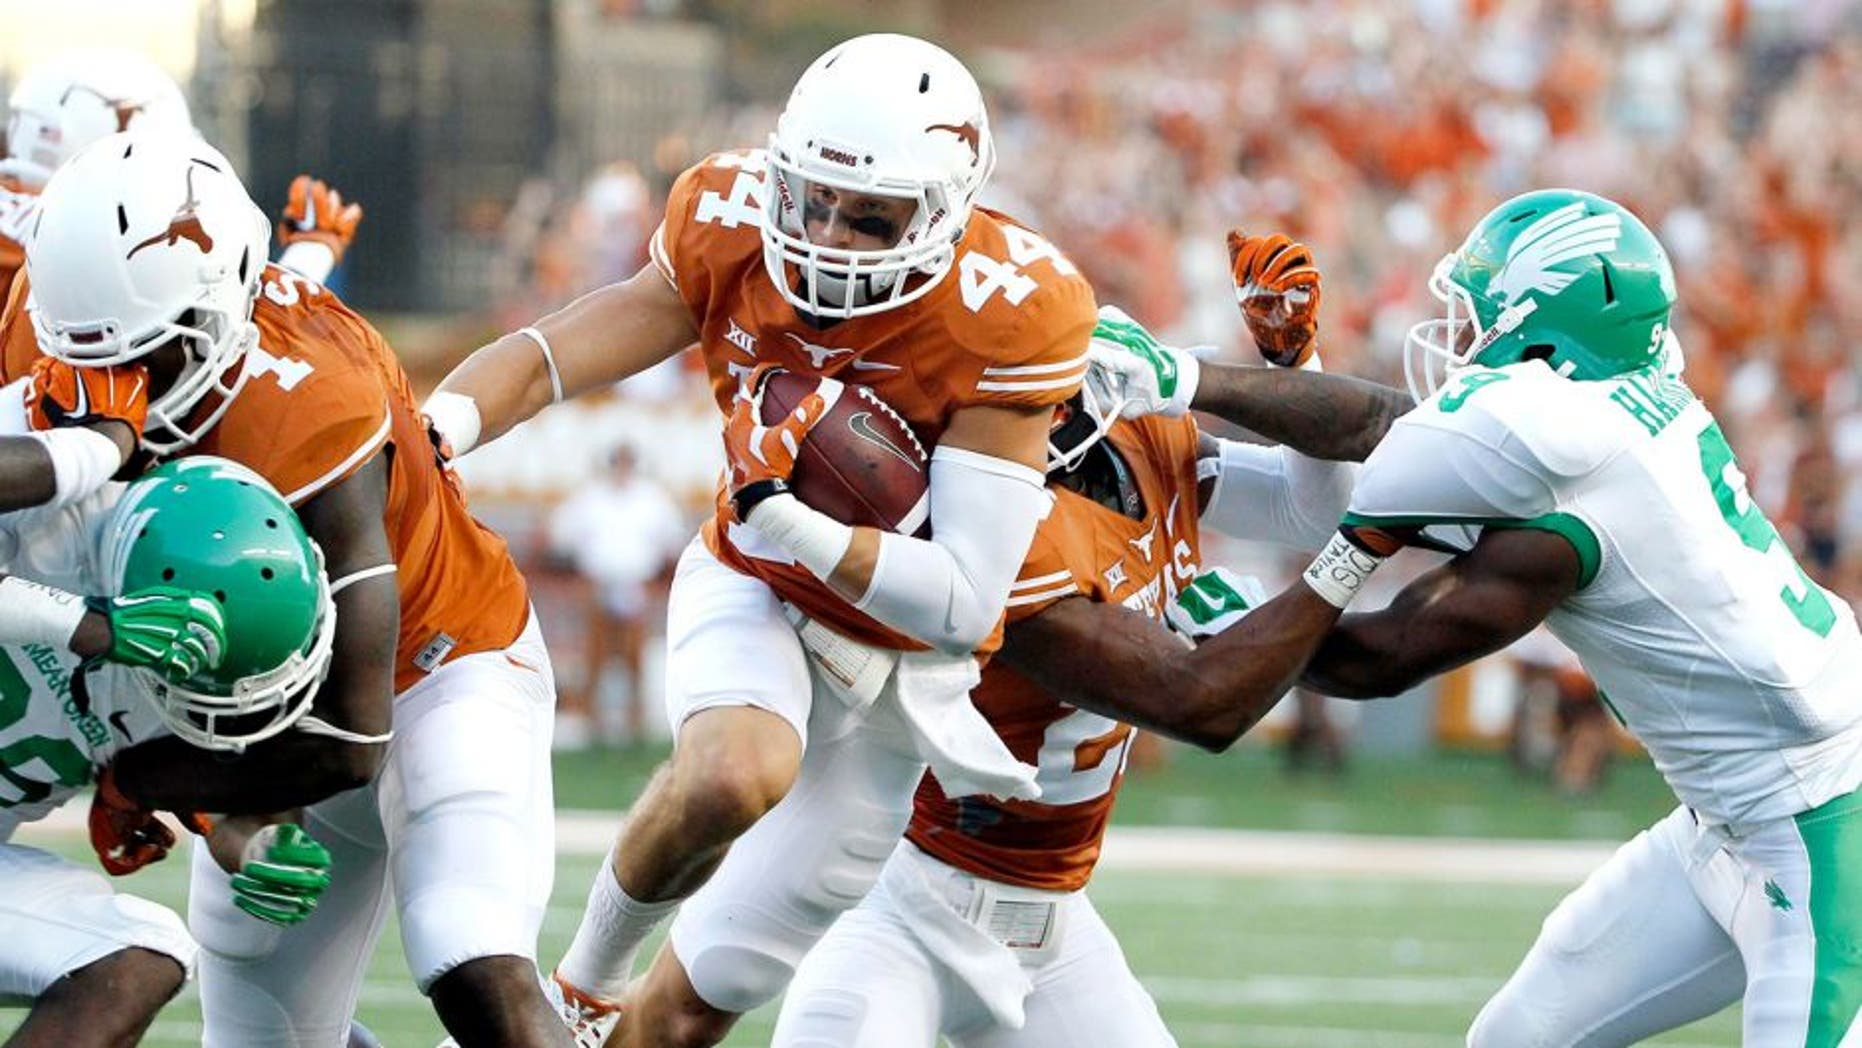 Aug 30, 2014; Austin, TX, USA; Texas Longhorns defensive back Dylan Haines (44) run with the ball after an interception against the North Texas Mean Green during the first half at Darrell K Royal-Texas Memorial Stadium. Mandatory Credit: Soobum Im-USA TODAY Sports